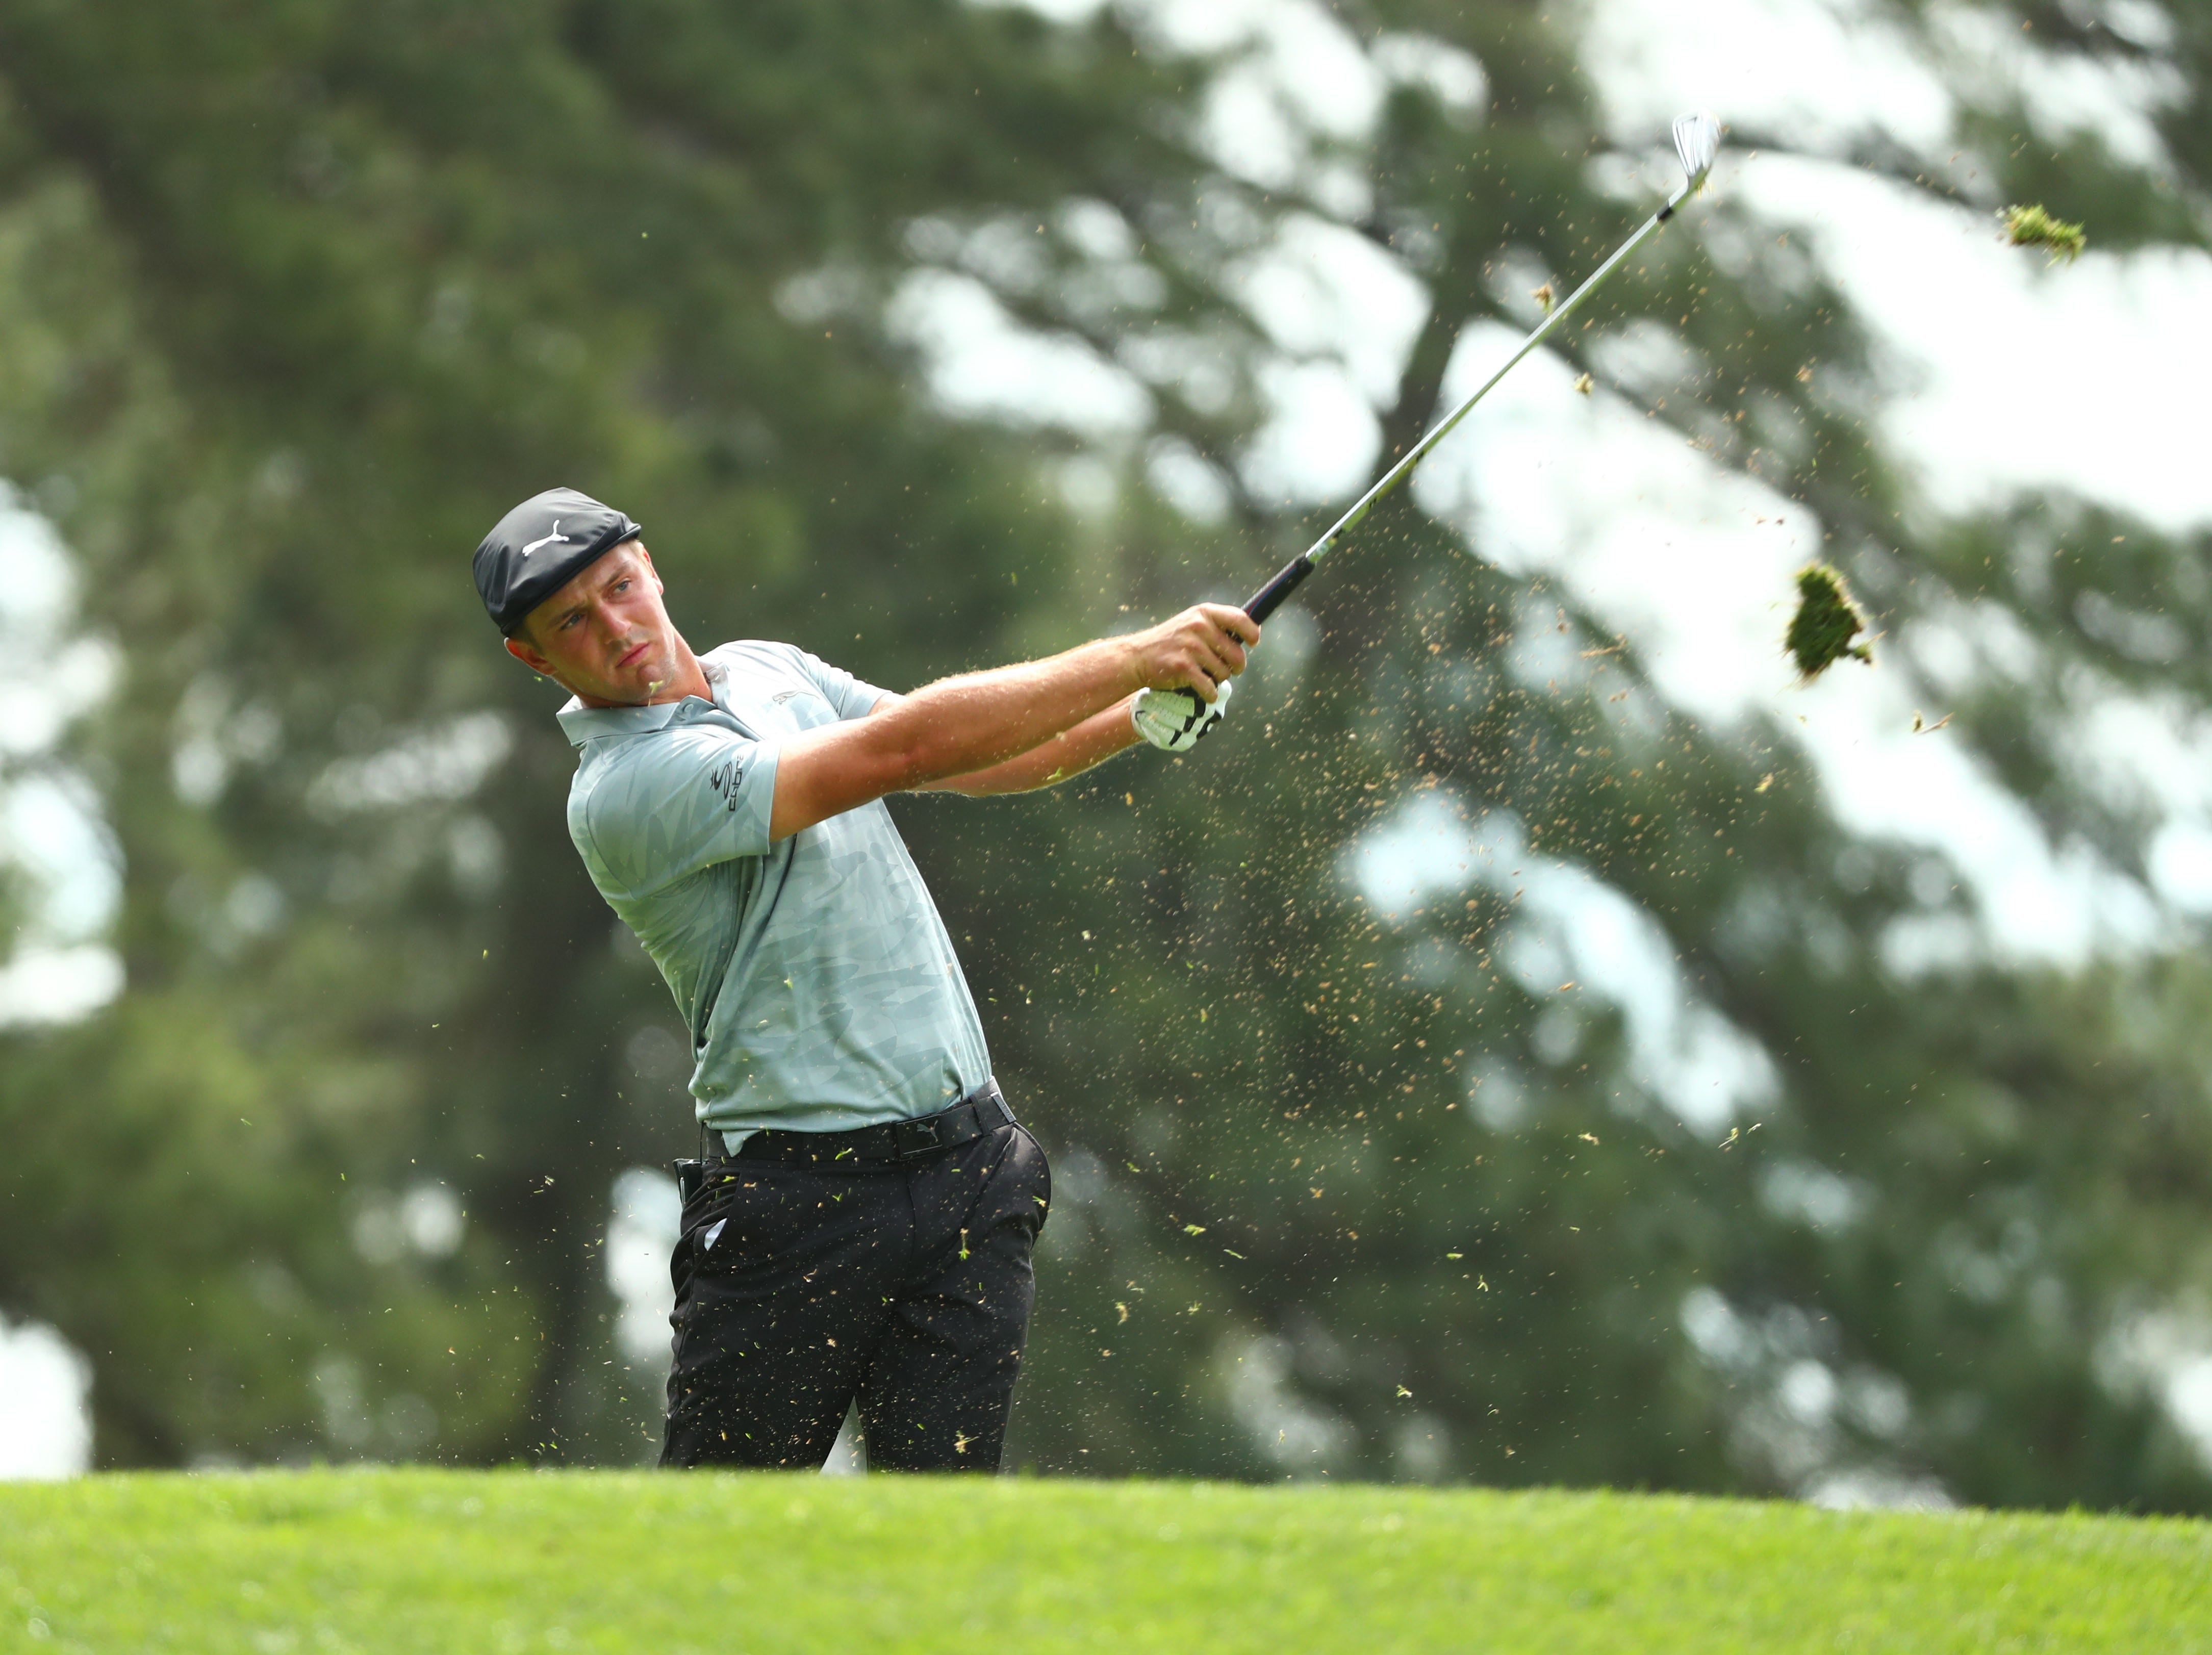 Apr 12, 2019; Augusta, GA, USA; Bryson DeChambeau hits his tee shot on the 4th hole during the second round of The Masters golf tournament at Augusta National Golf Club. Mandatory Credit: Rob Schumacher-USA TODAY Sports